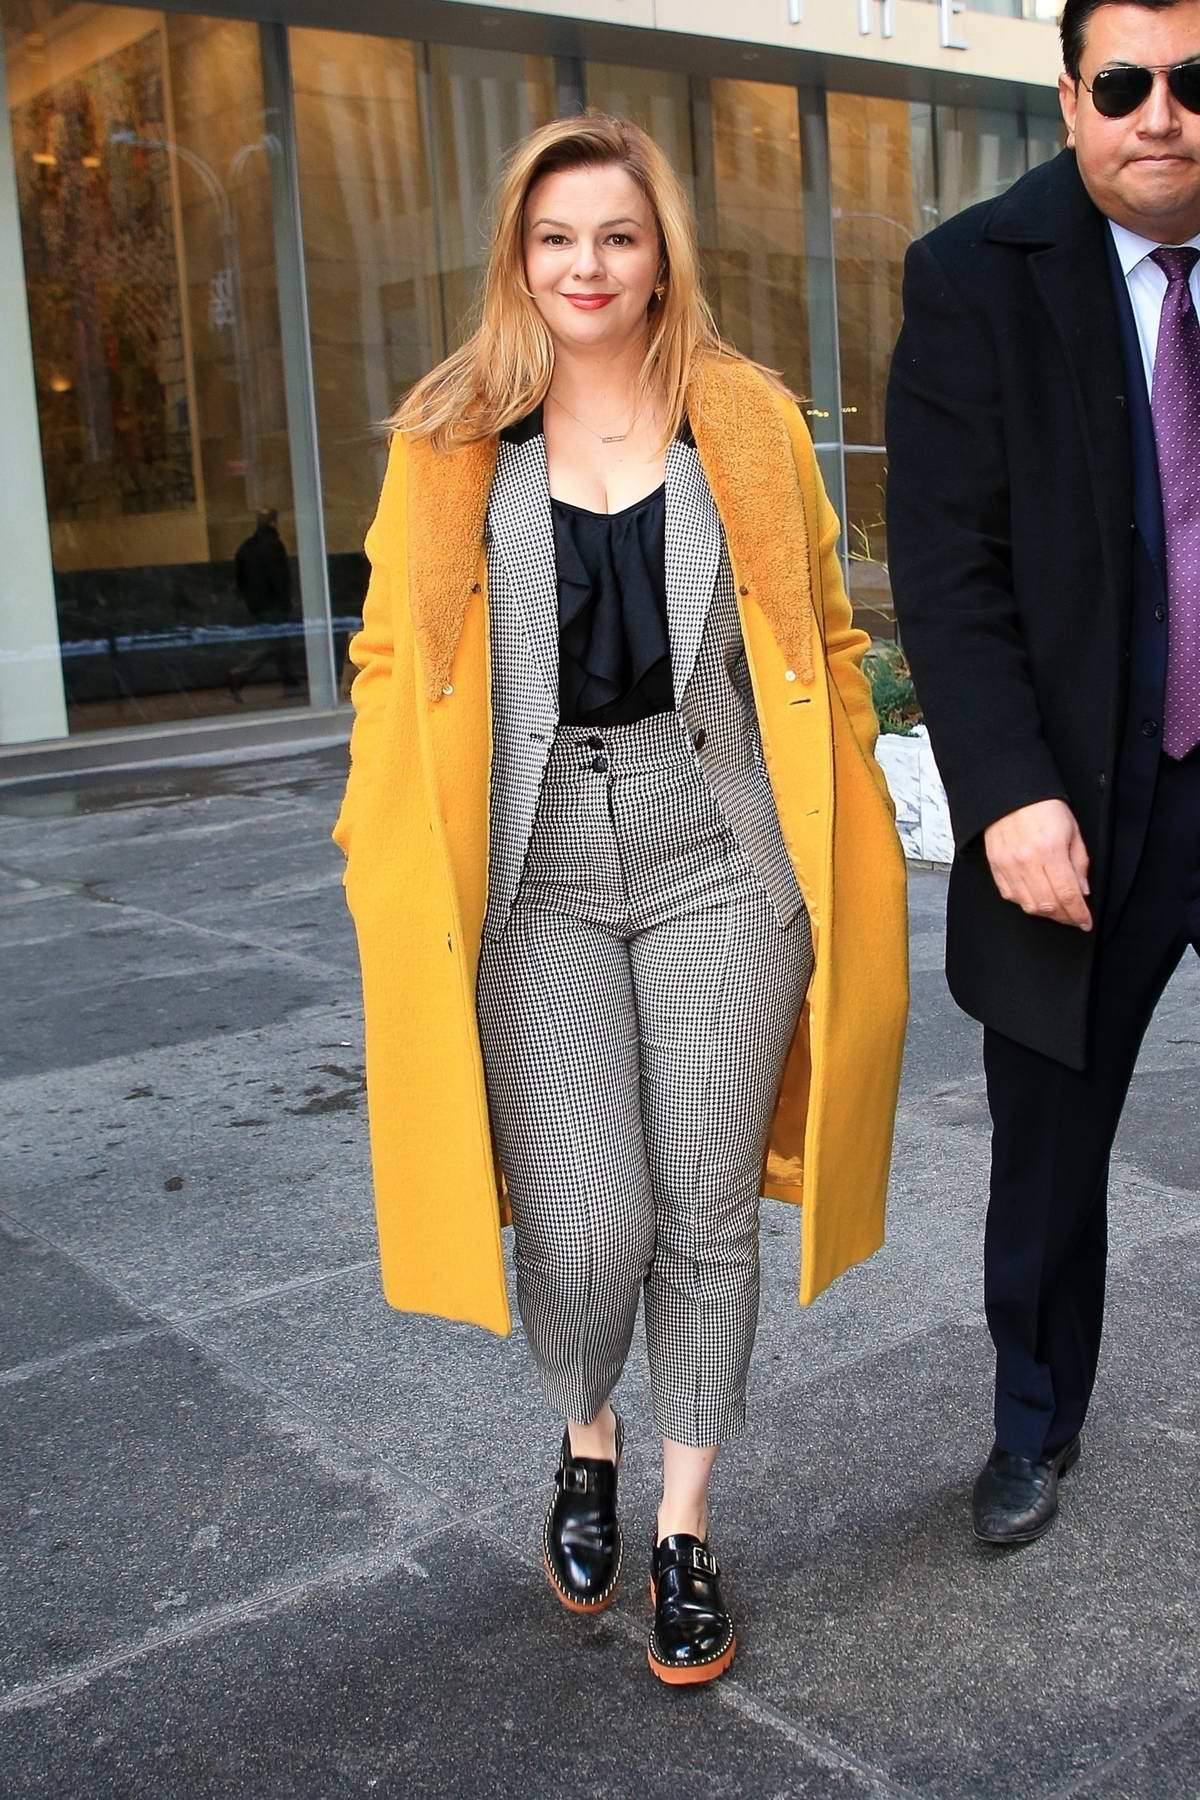 Amber Tamblyn steps out in a mustard yellow coat with with a grey suit during a promotional tour in New York City